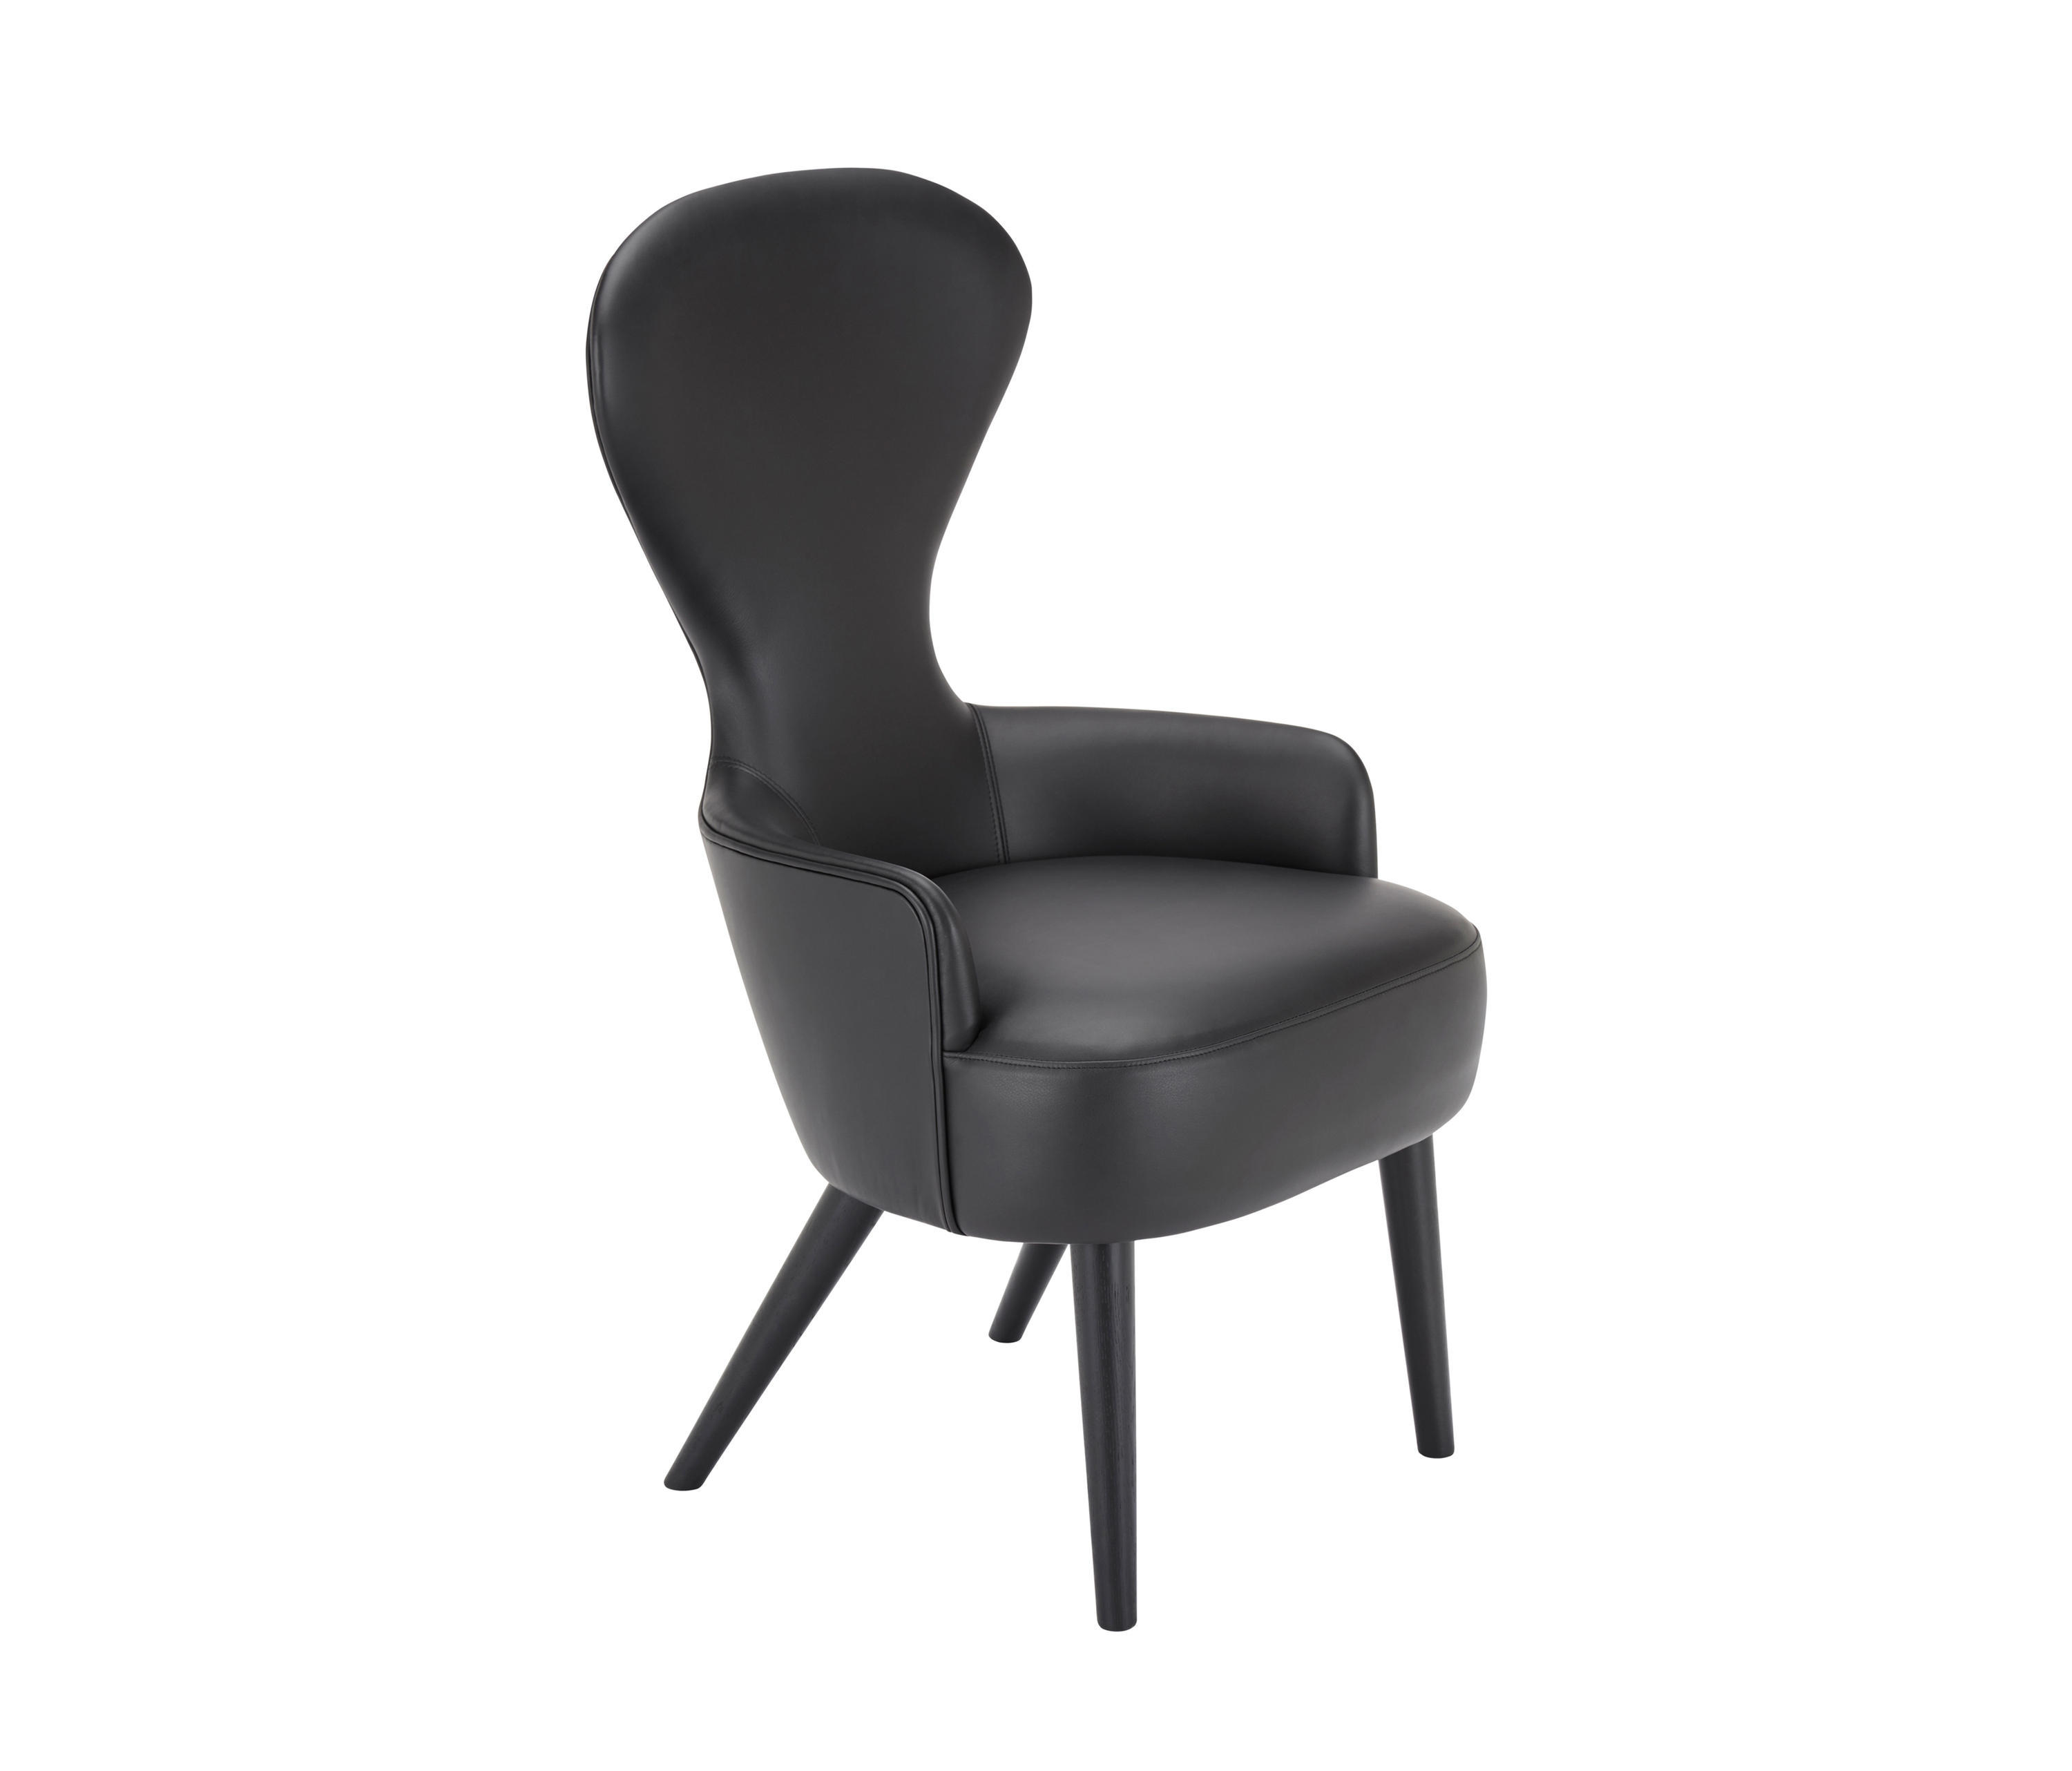 Wingback Dining Chairs Wingback Dining Chair Black Leg Elmosoft Leather